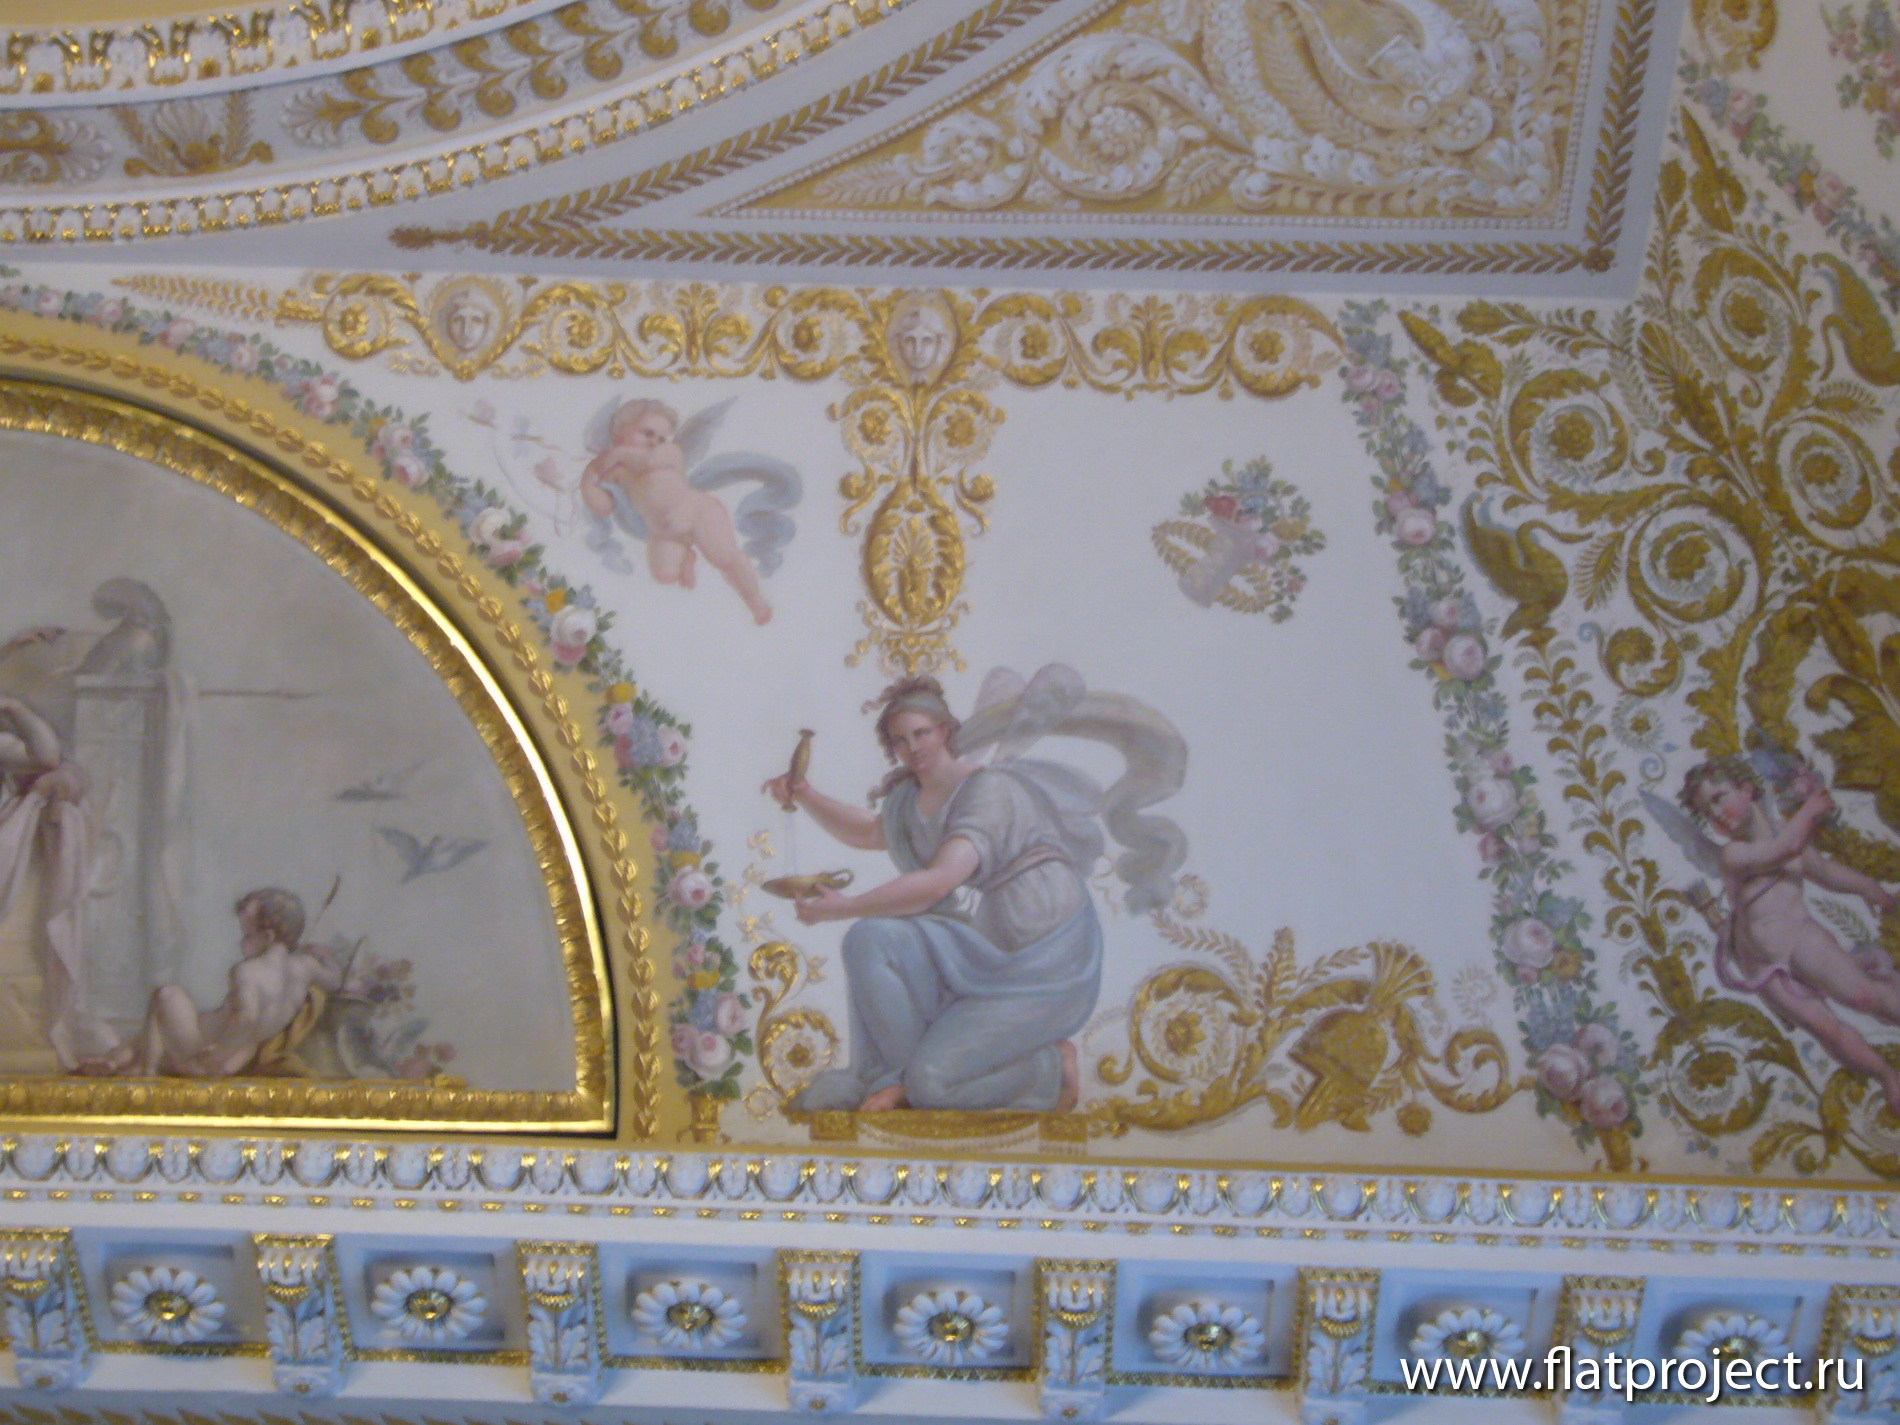 The State Russian museum interiors – photo 53